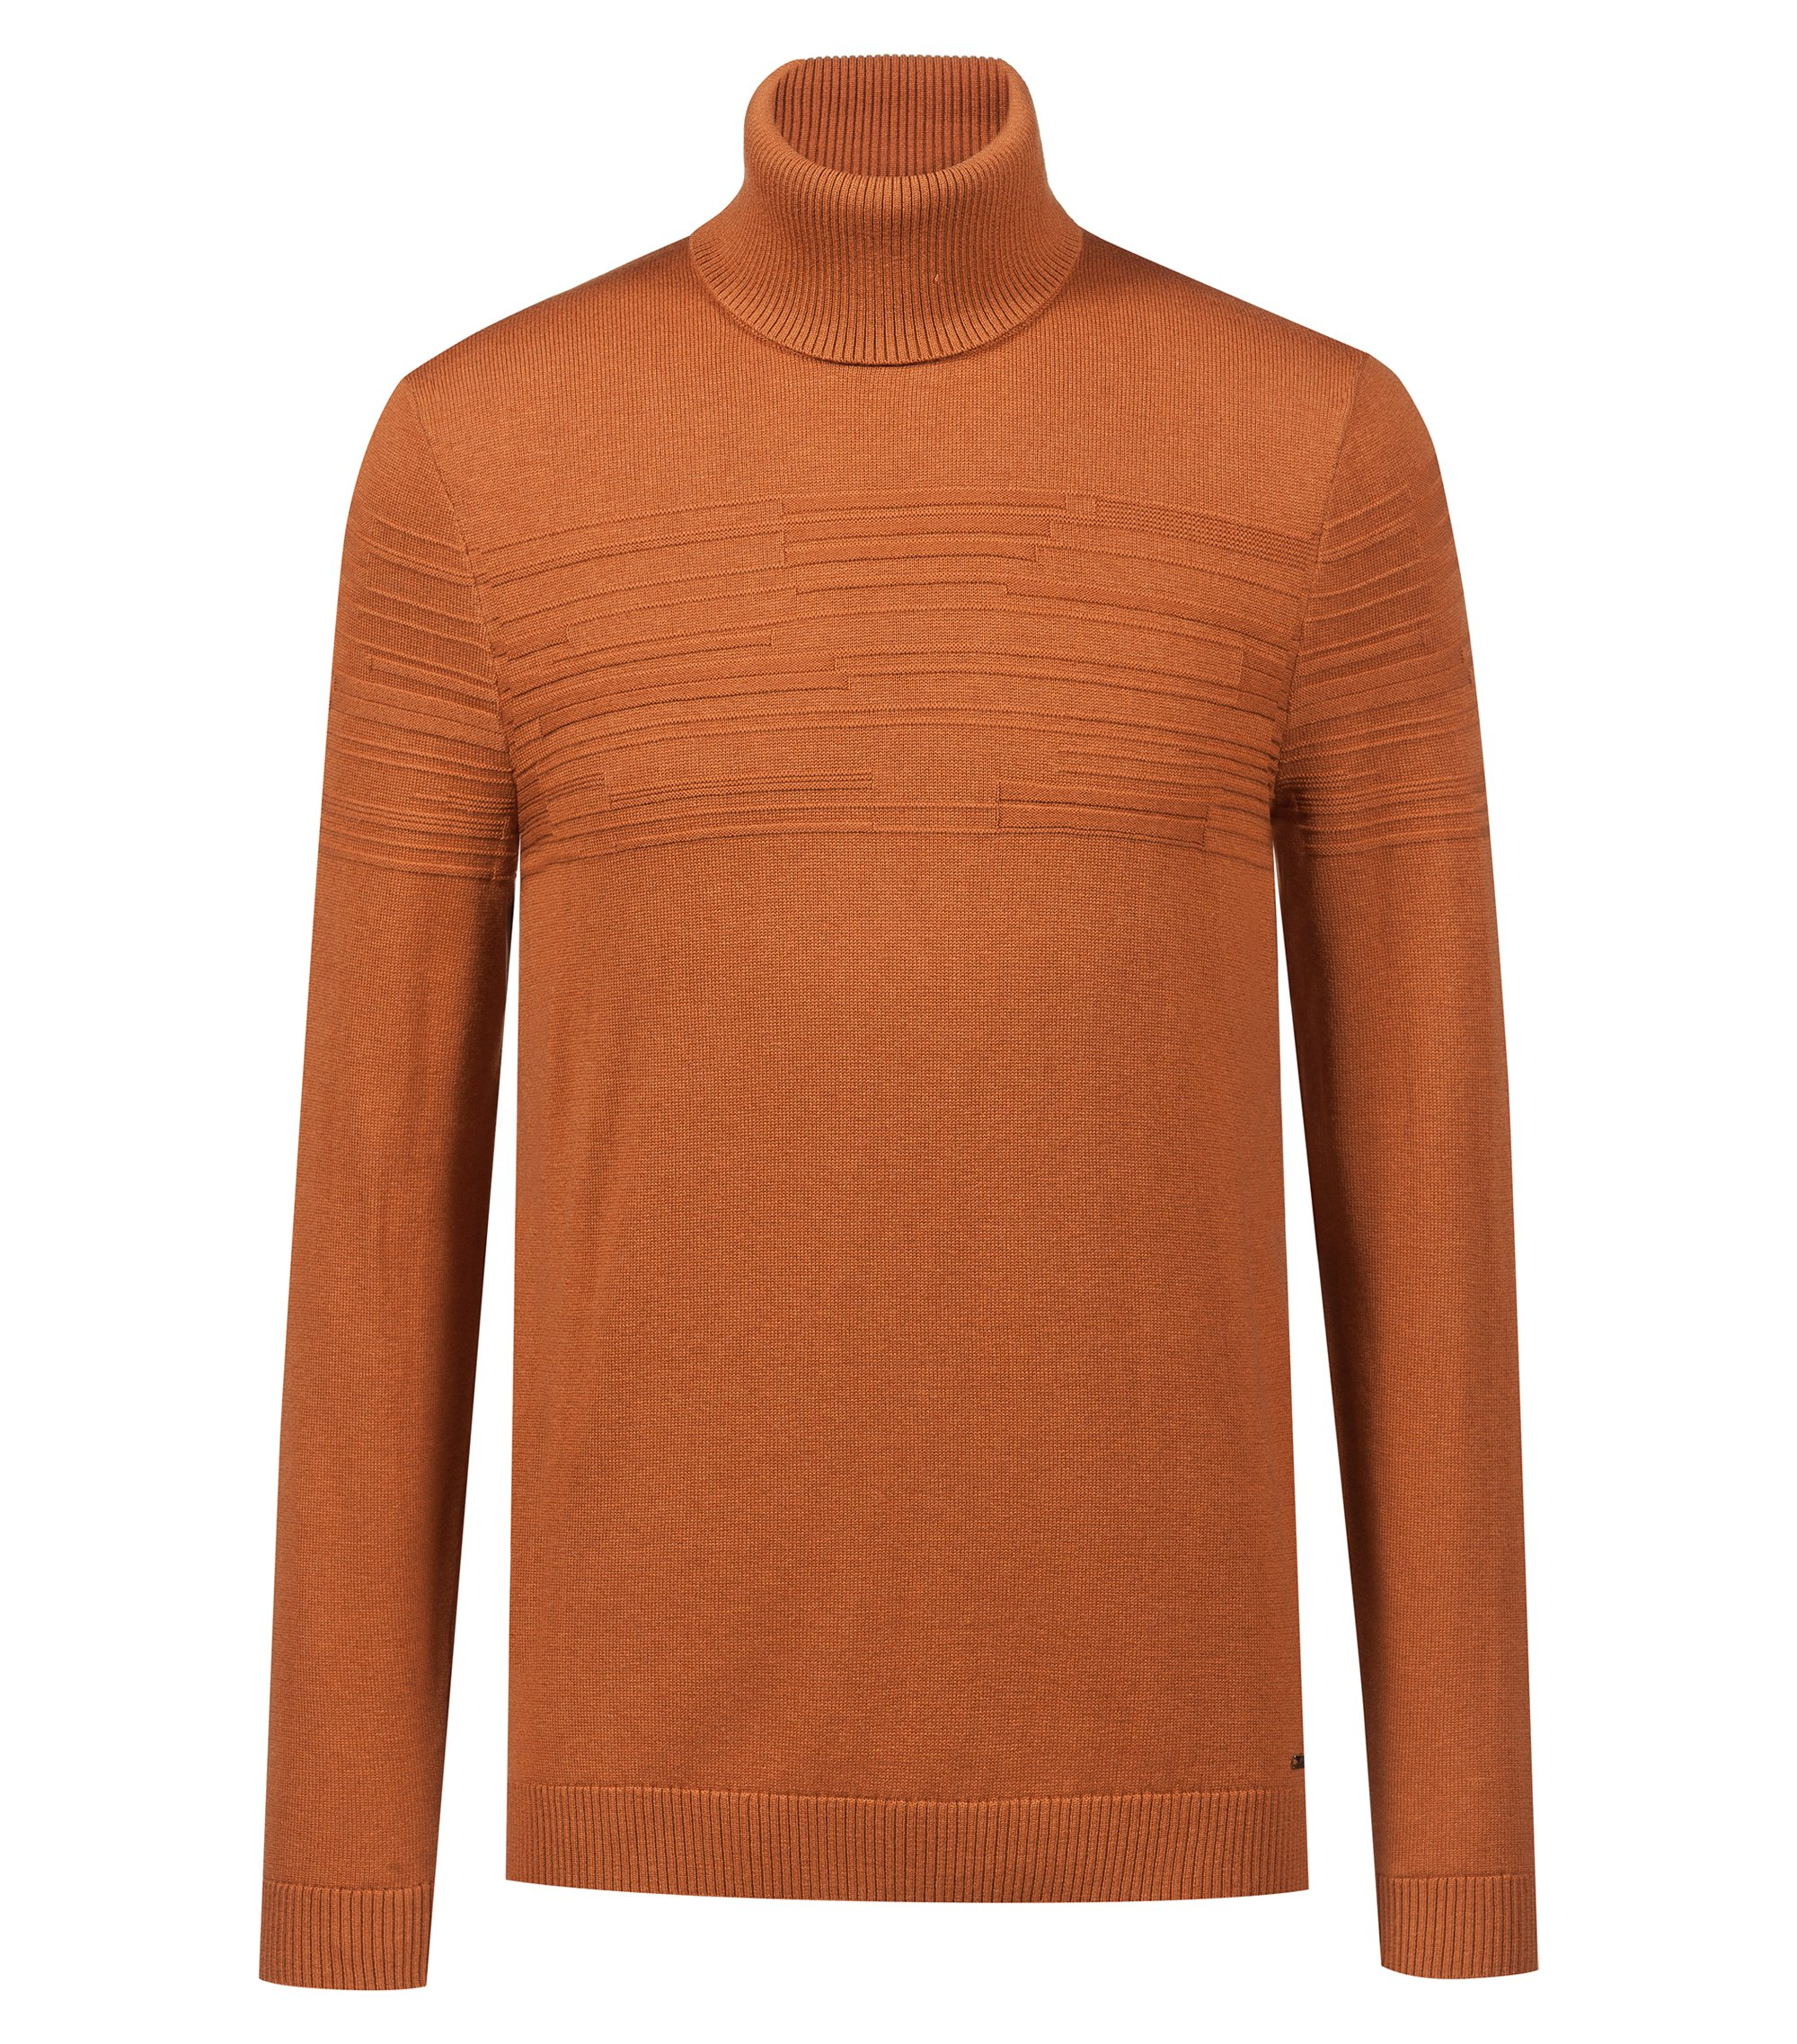 Maglione slim fit con colletto a tartaruga in misto cotone-lana, Marrone